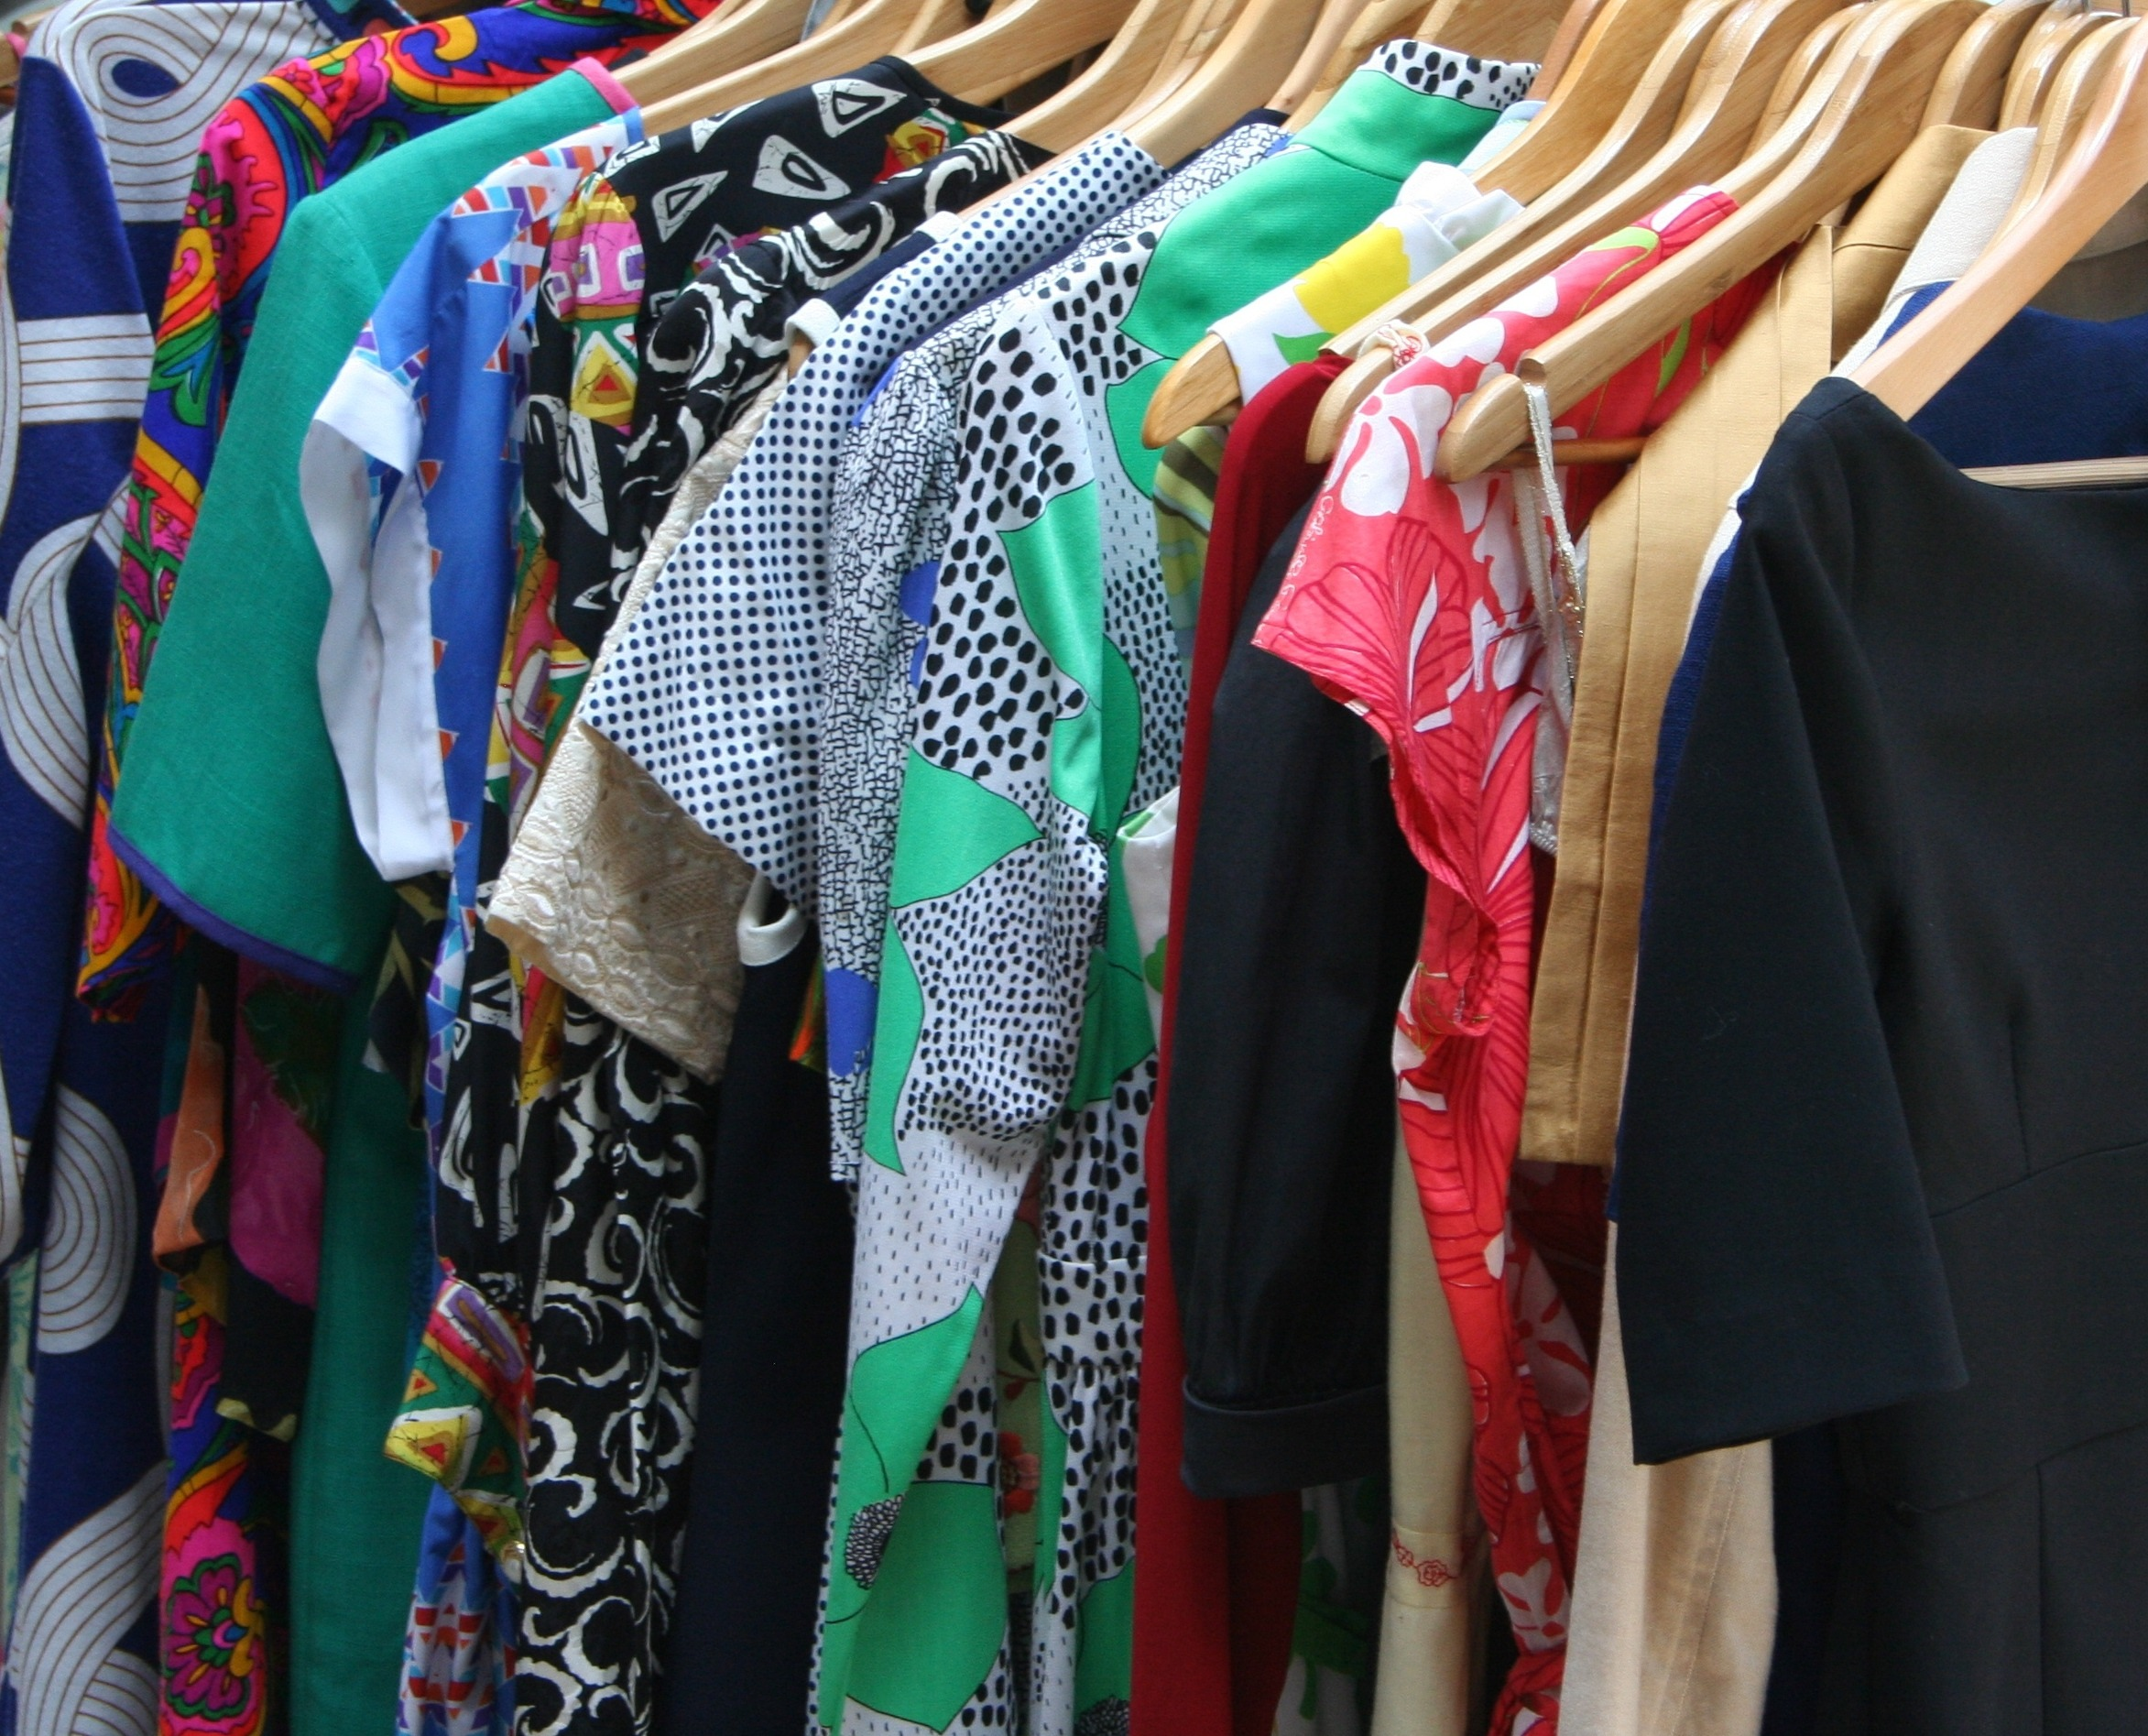 Spring Clean Your Closet the Eco-Friendly Way